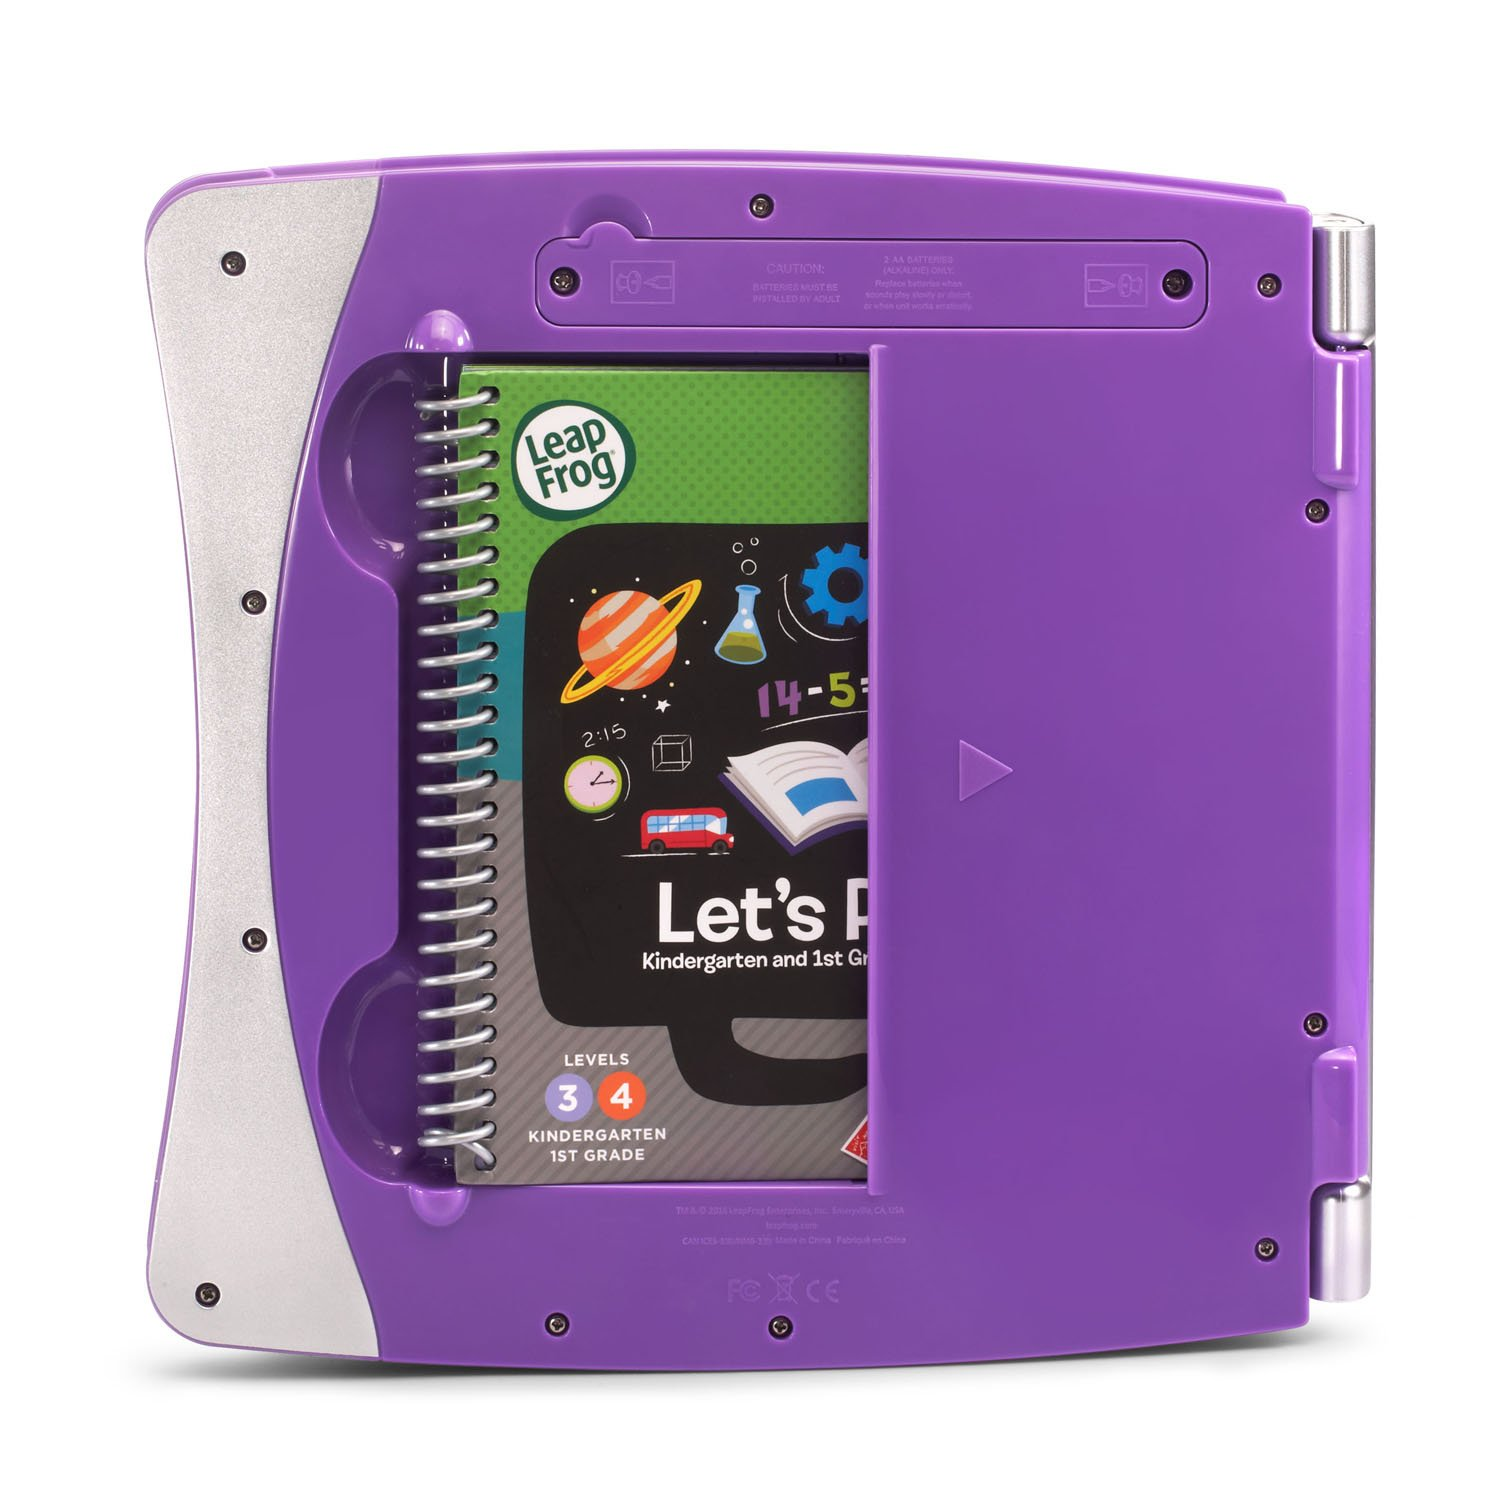 LeapFrog LeapStart Interactive Learning System Kindergarten and 1st Grade Amazon Exclusive by LeapFrog (Image #4)